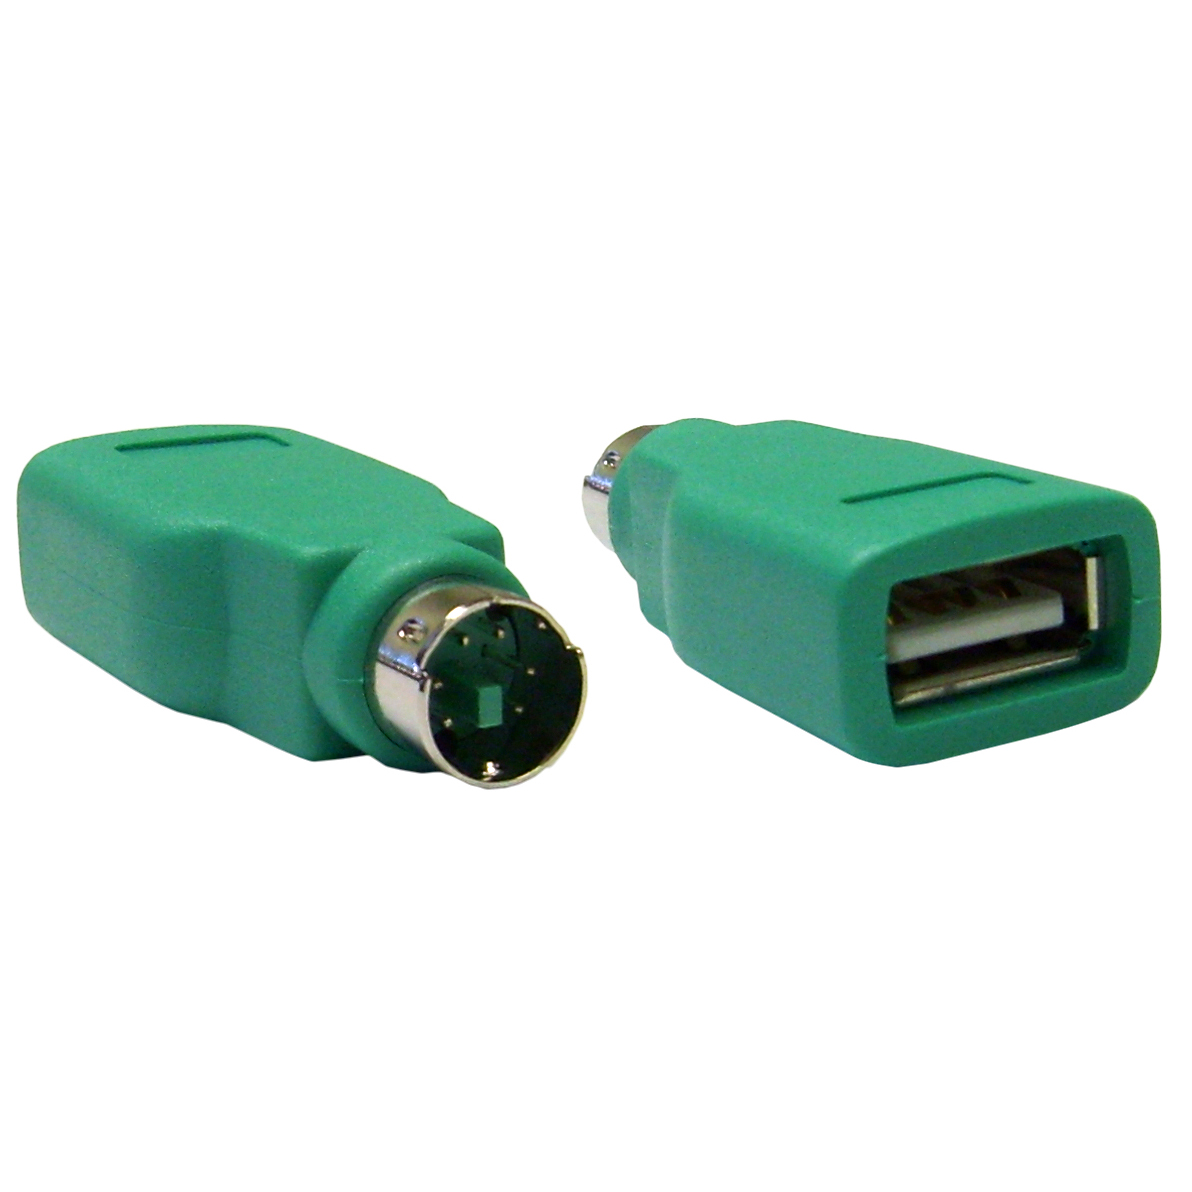 USB to PS/2 Keyboard/Mouse Adapter, Green, USB Type A Female